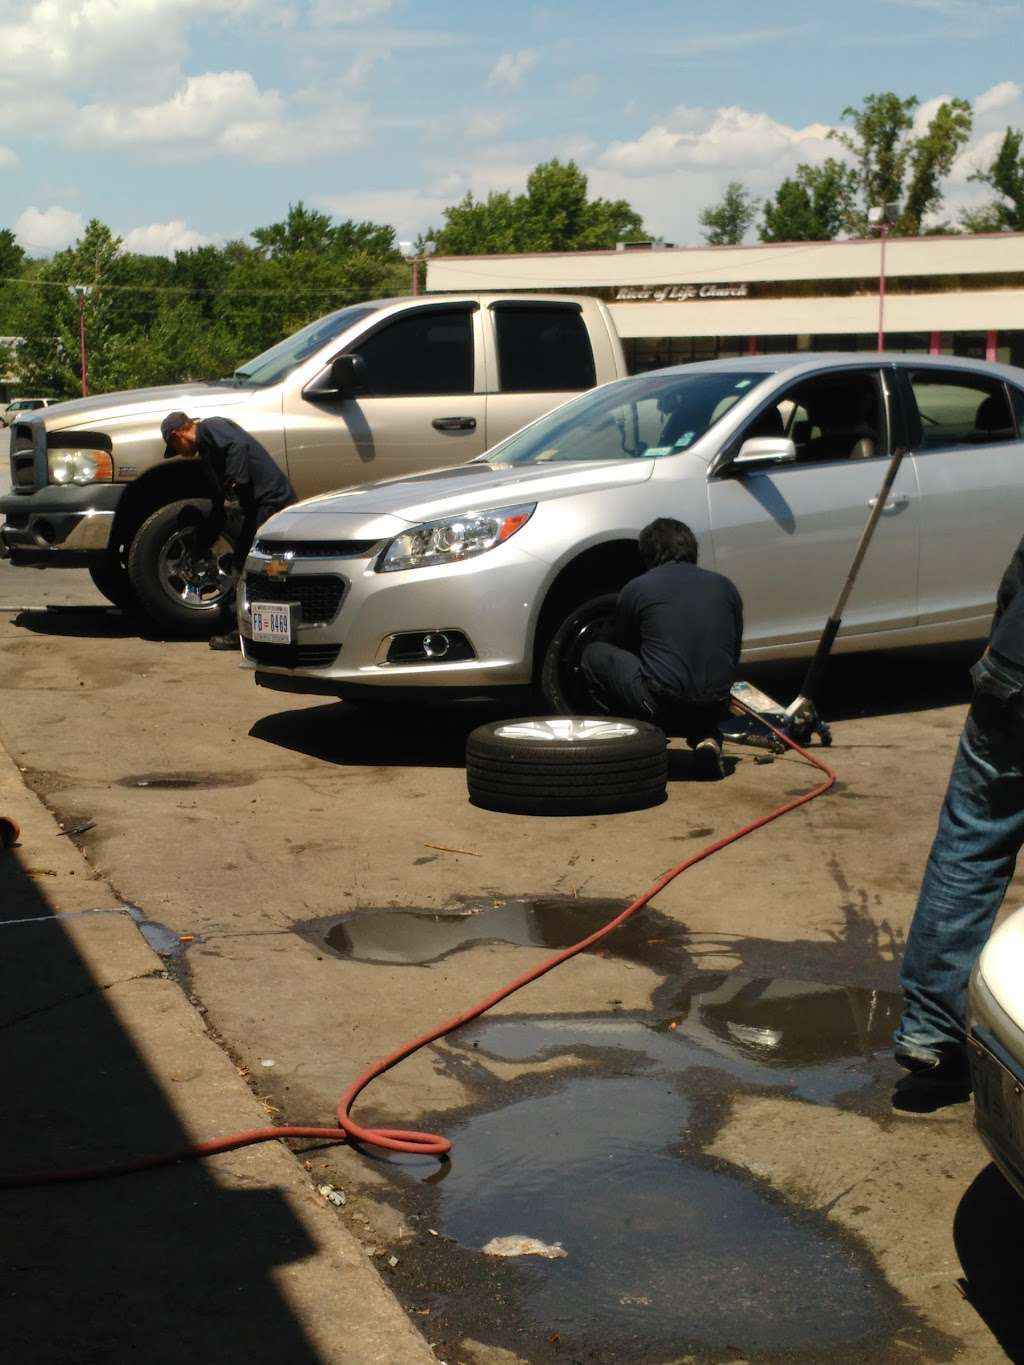 A & K Used Tires Inc - car repair  | Photo 2 of 4 | Address: 3140 Branch Ave, Hillcrest Heights, MD 20748, USA | Phone: (301) 894-5500